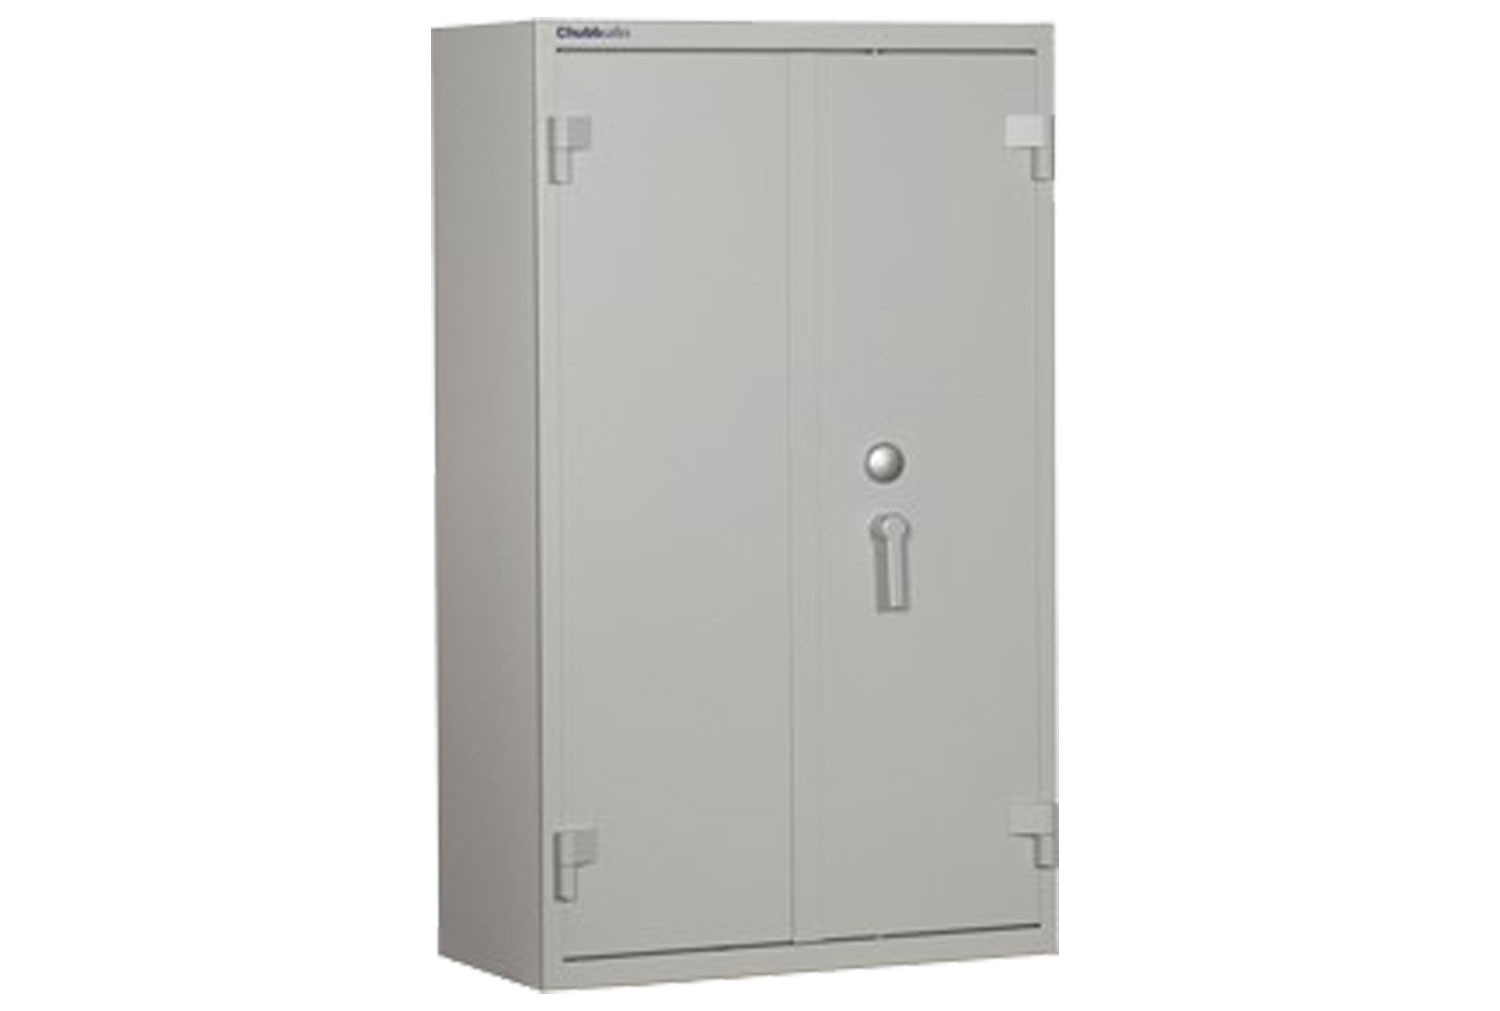 Chubbsafes Forceguard Size 2 Burglary Resistant Cabinet (534ltrs)